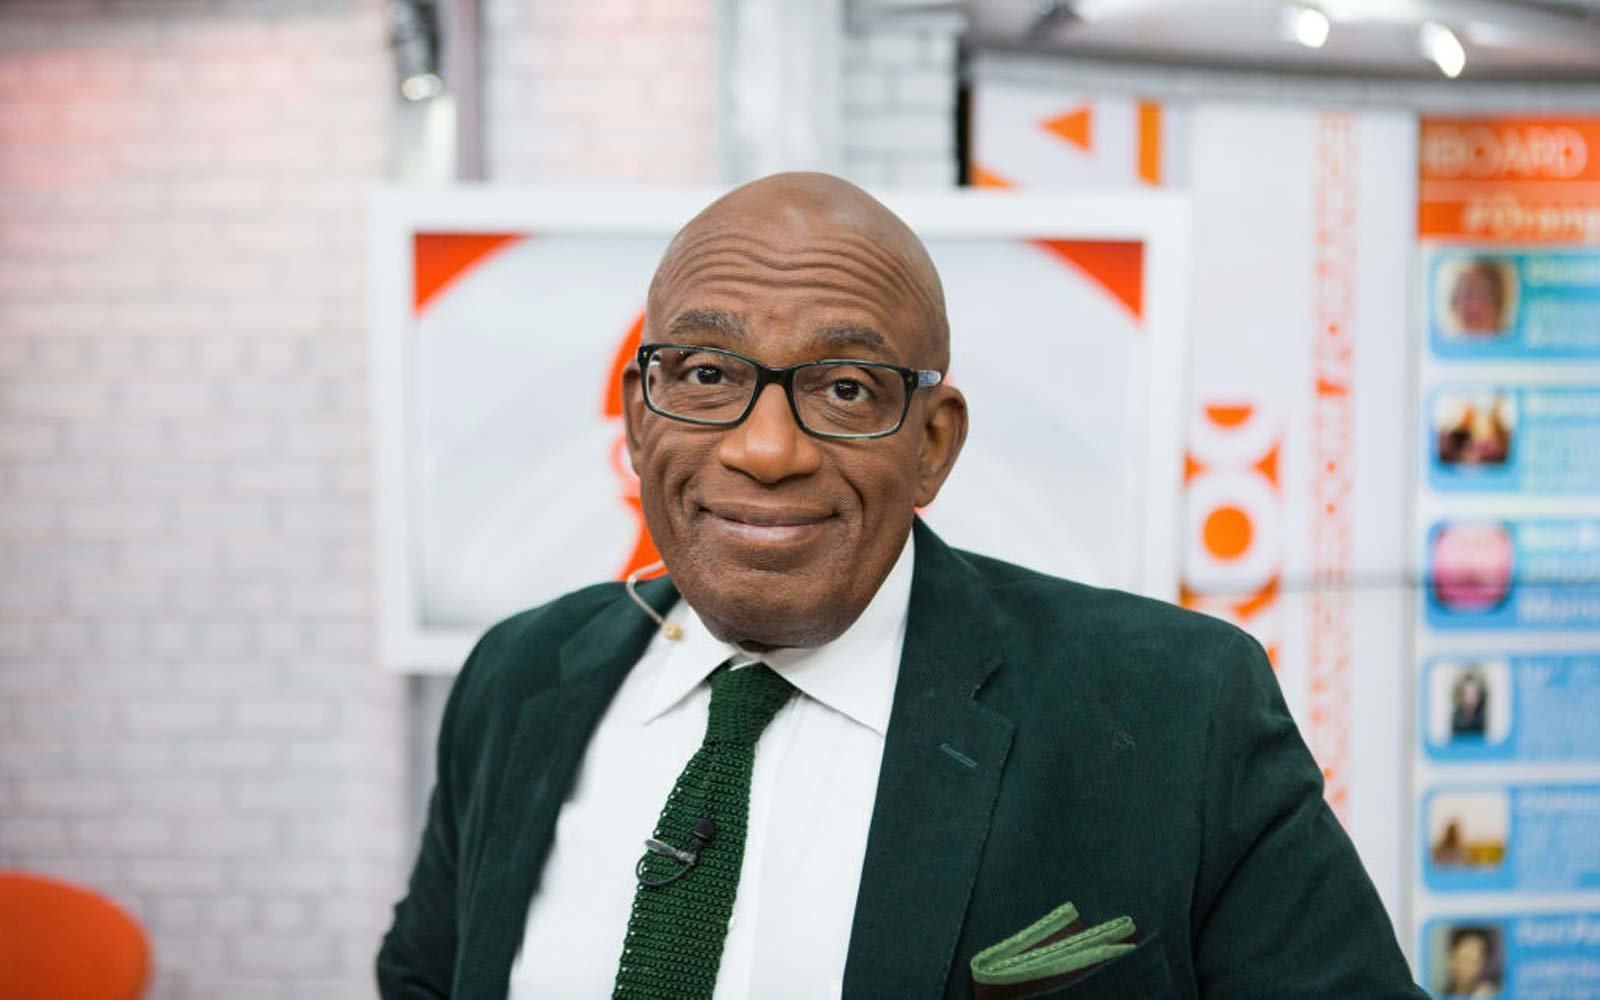 Universal Orlando Is Opening a 'Today' Show Café Inspired by Al Roker